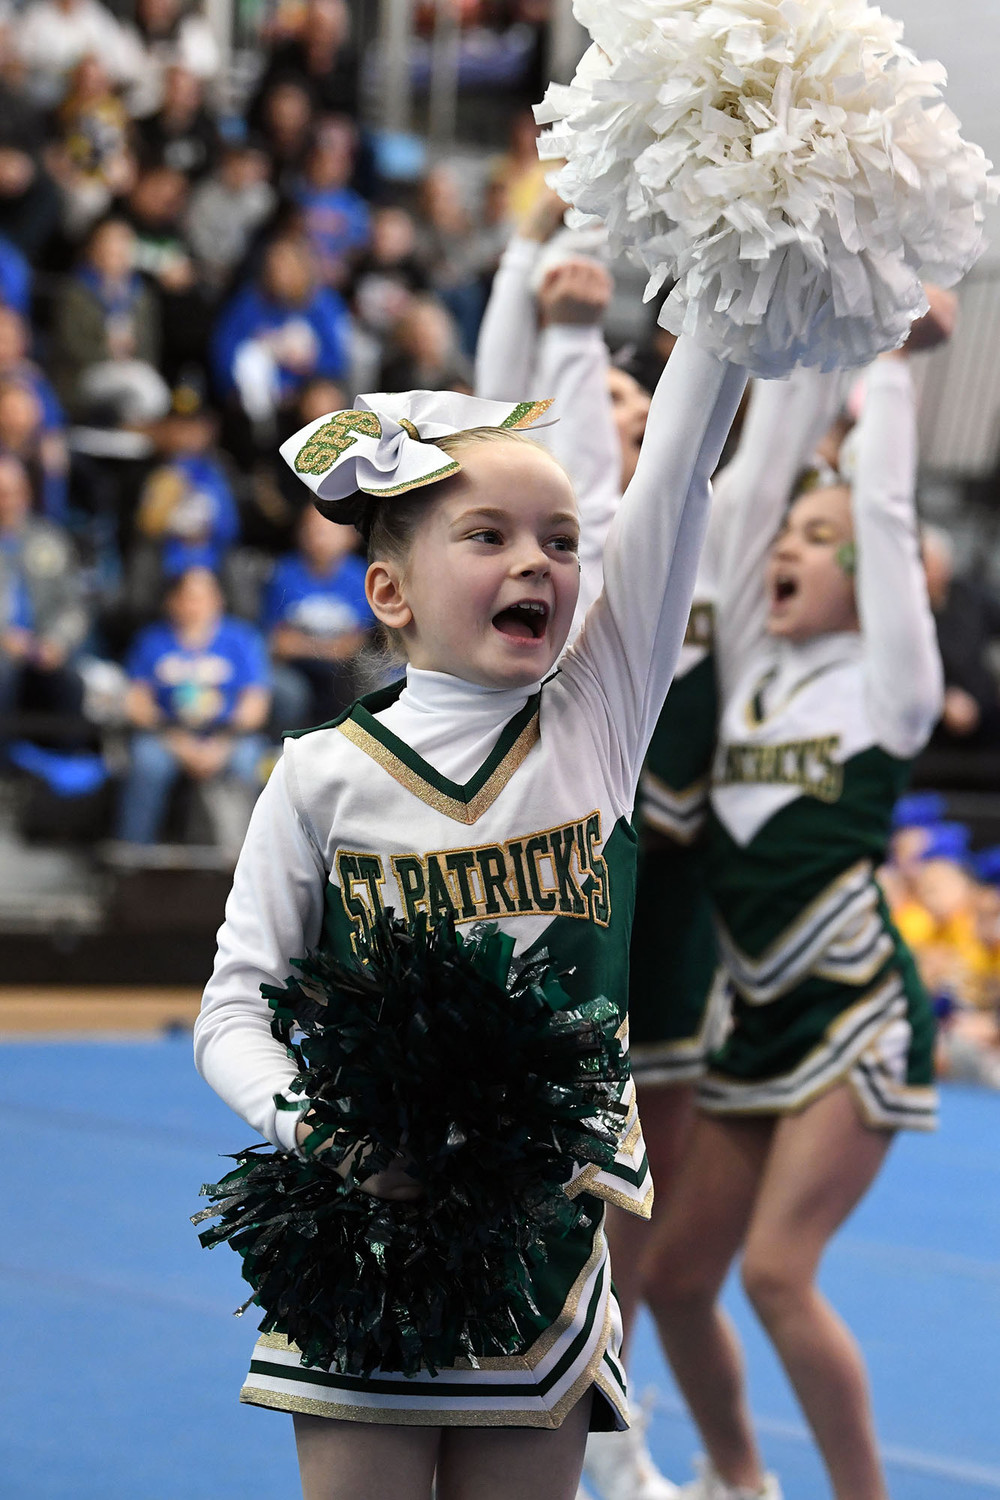 St. Patrick won the Debs Small Division at the archdiocesan CYO Cheerleading Championships at the College of Staten Island March 24. Twenty-five teams representing 11 parishes, 10 from Staten Island, participated.